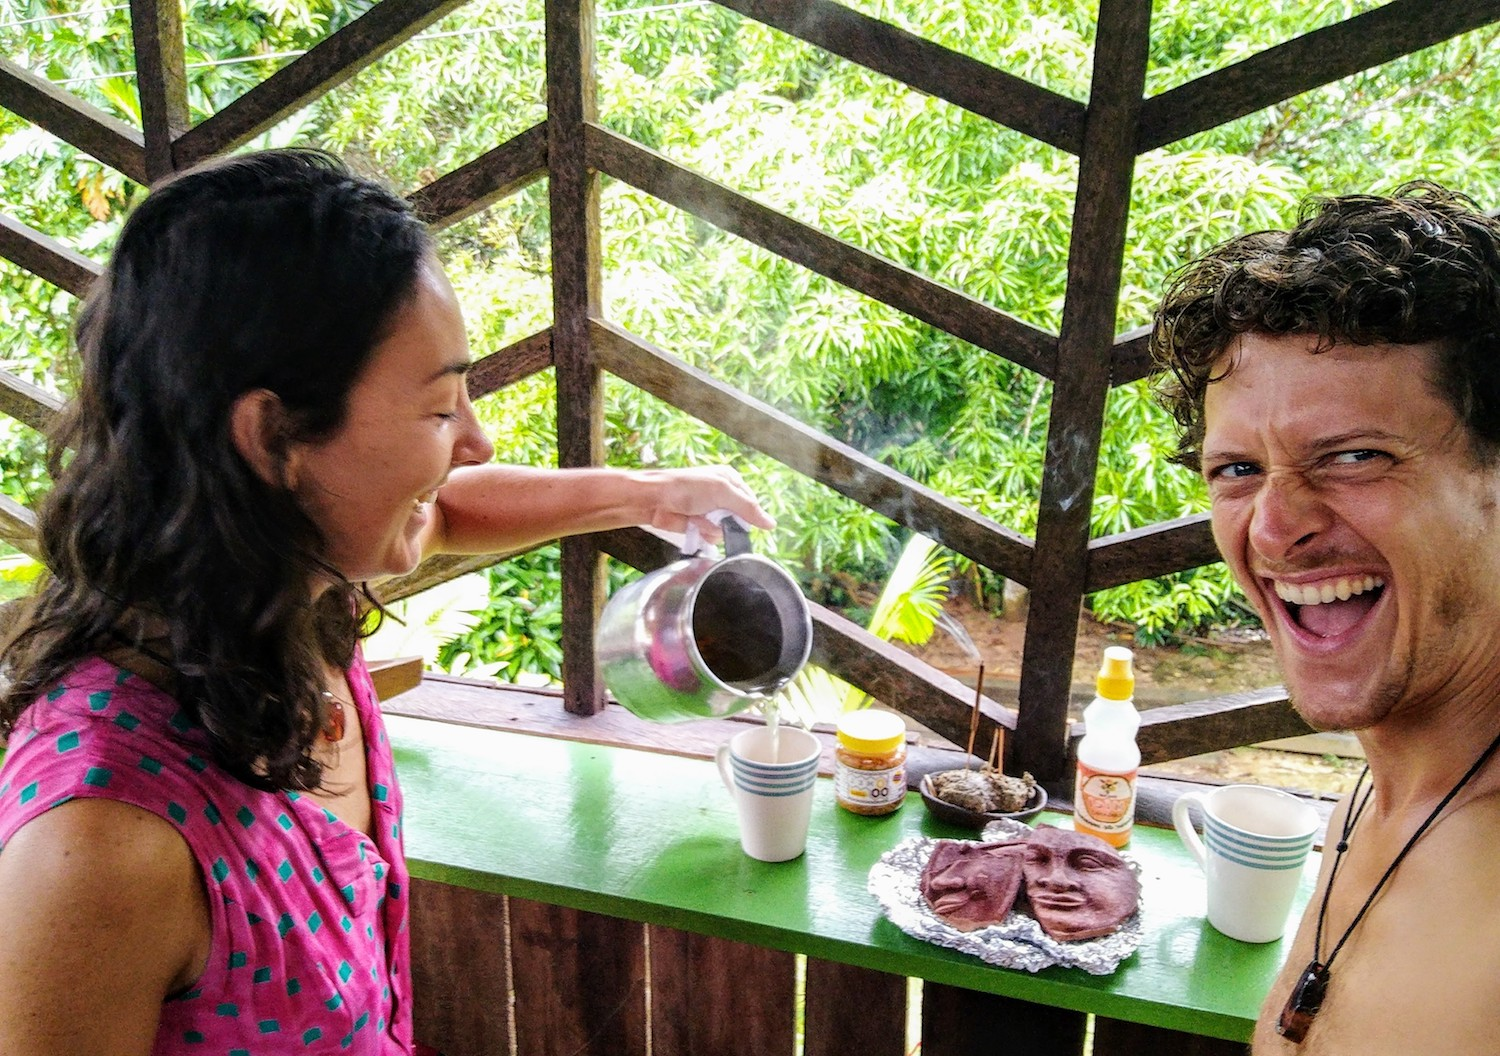 Sharing cacao drinks in the Amazon. This is where Leonie envisioned the Cacao Bar that we opened exactly one year later in Amsterdam.